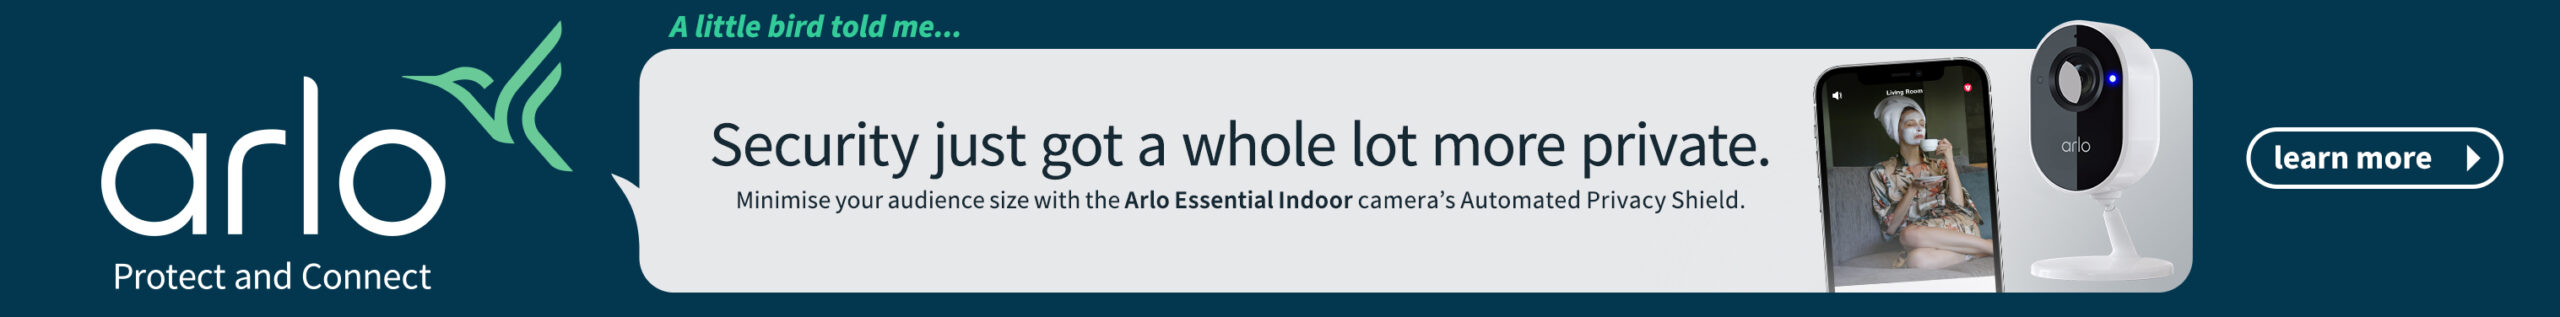 ARL0355 Arlo ESS Indoor Generic Banner 728x90 V4 scaled Very Thin Plasma TV With HD Wireless From Panasonic